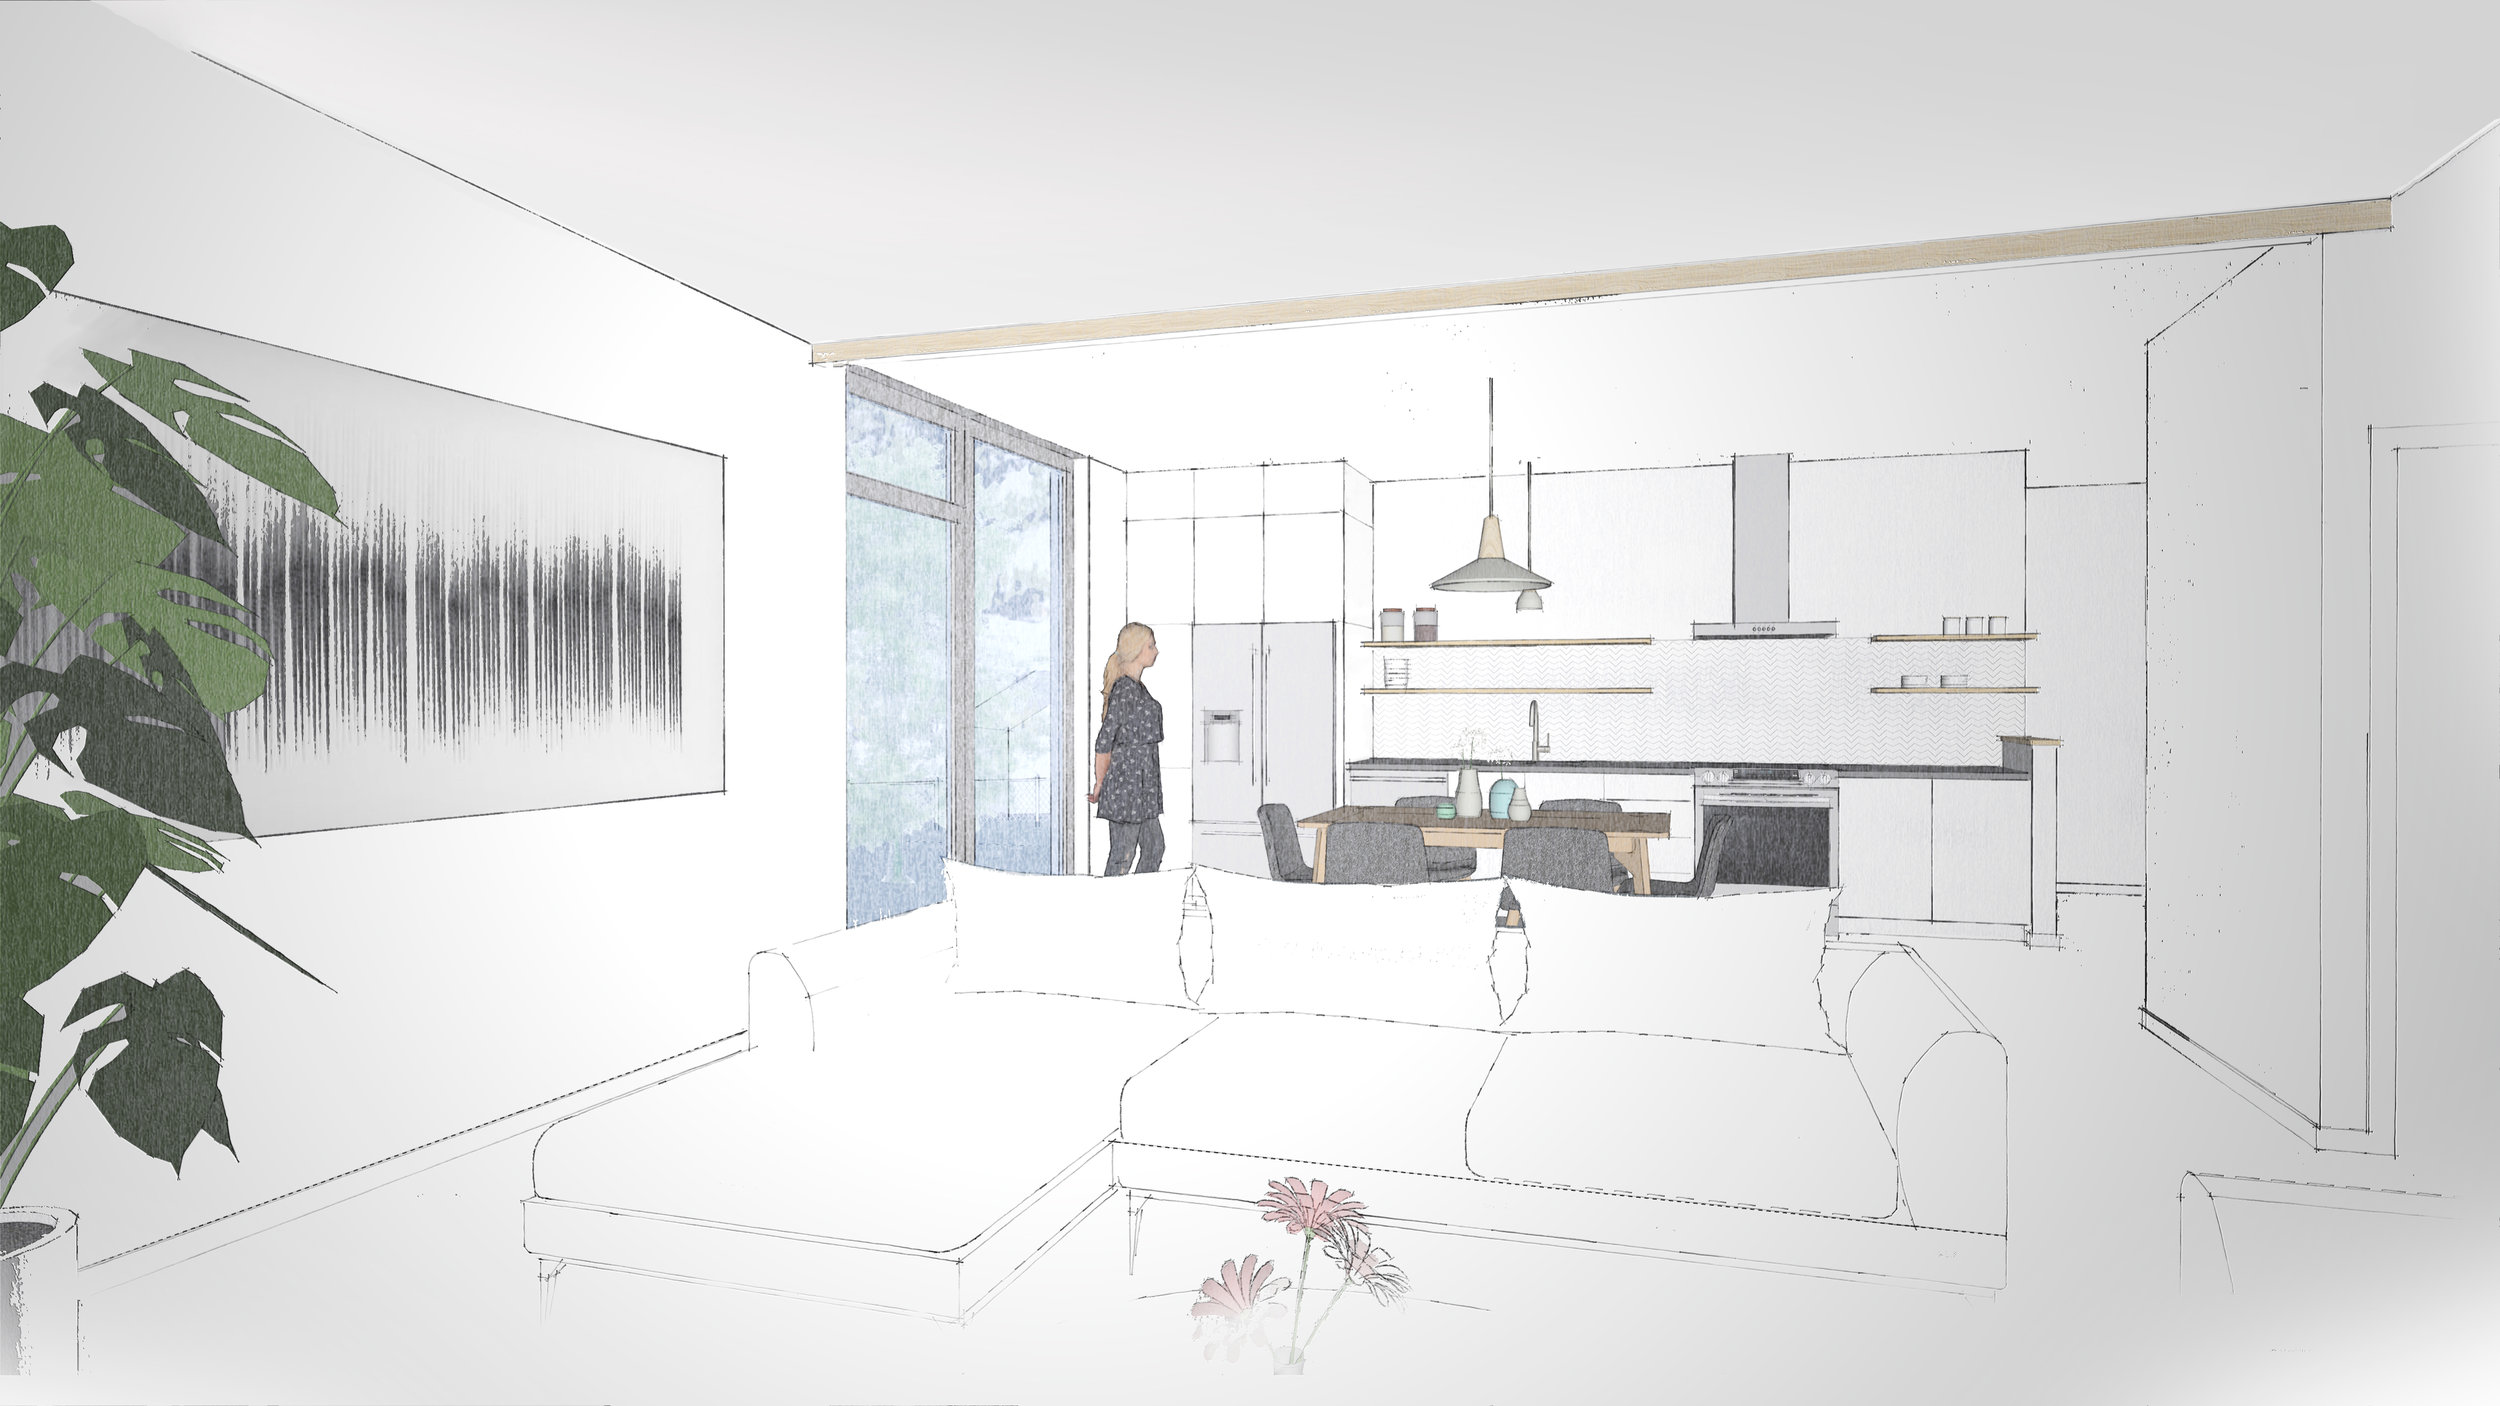 Schematic view of the kitchen area in Floor Plan North. *schematic only, final elevations, fixtures, finishes, and design subject to change.